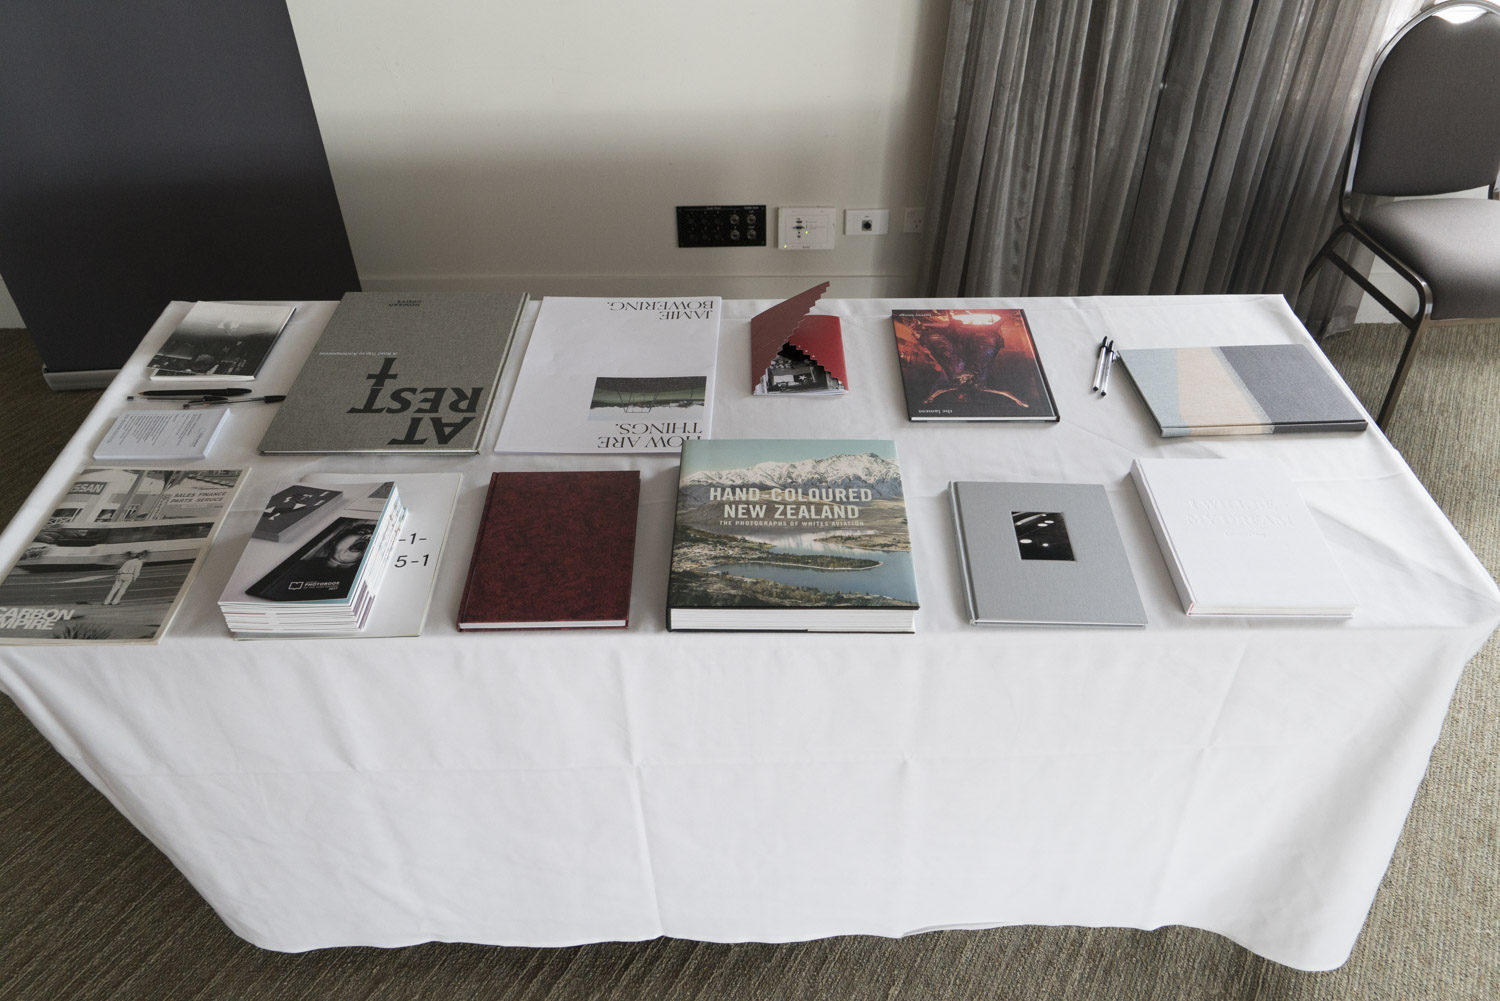 Finalists for the 2017 New Zealand Photobook of the Year Award.